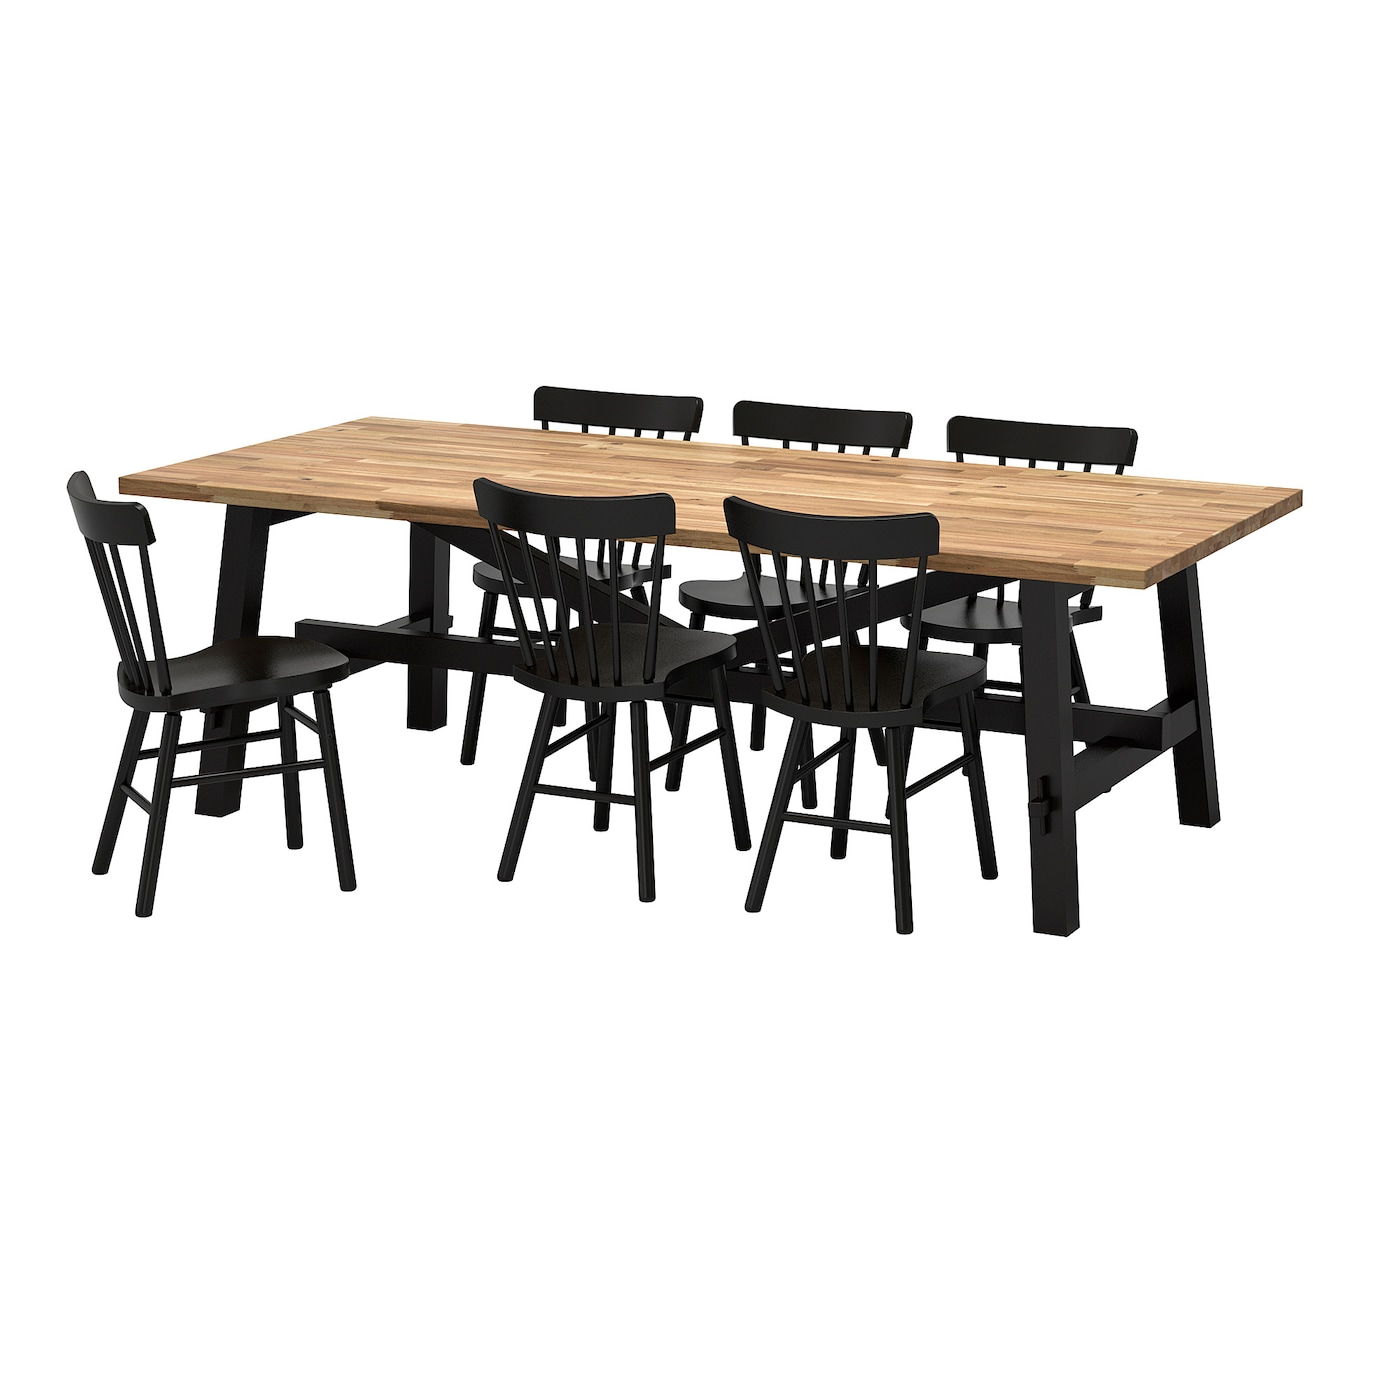 IKEA NORRARYD/SKOGSTA table and 6 chairs